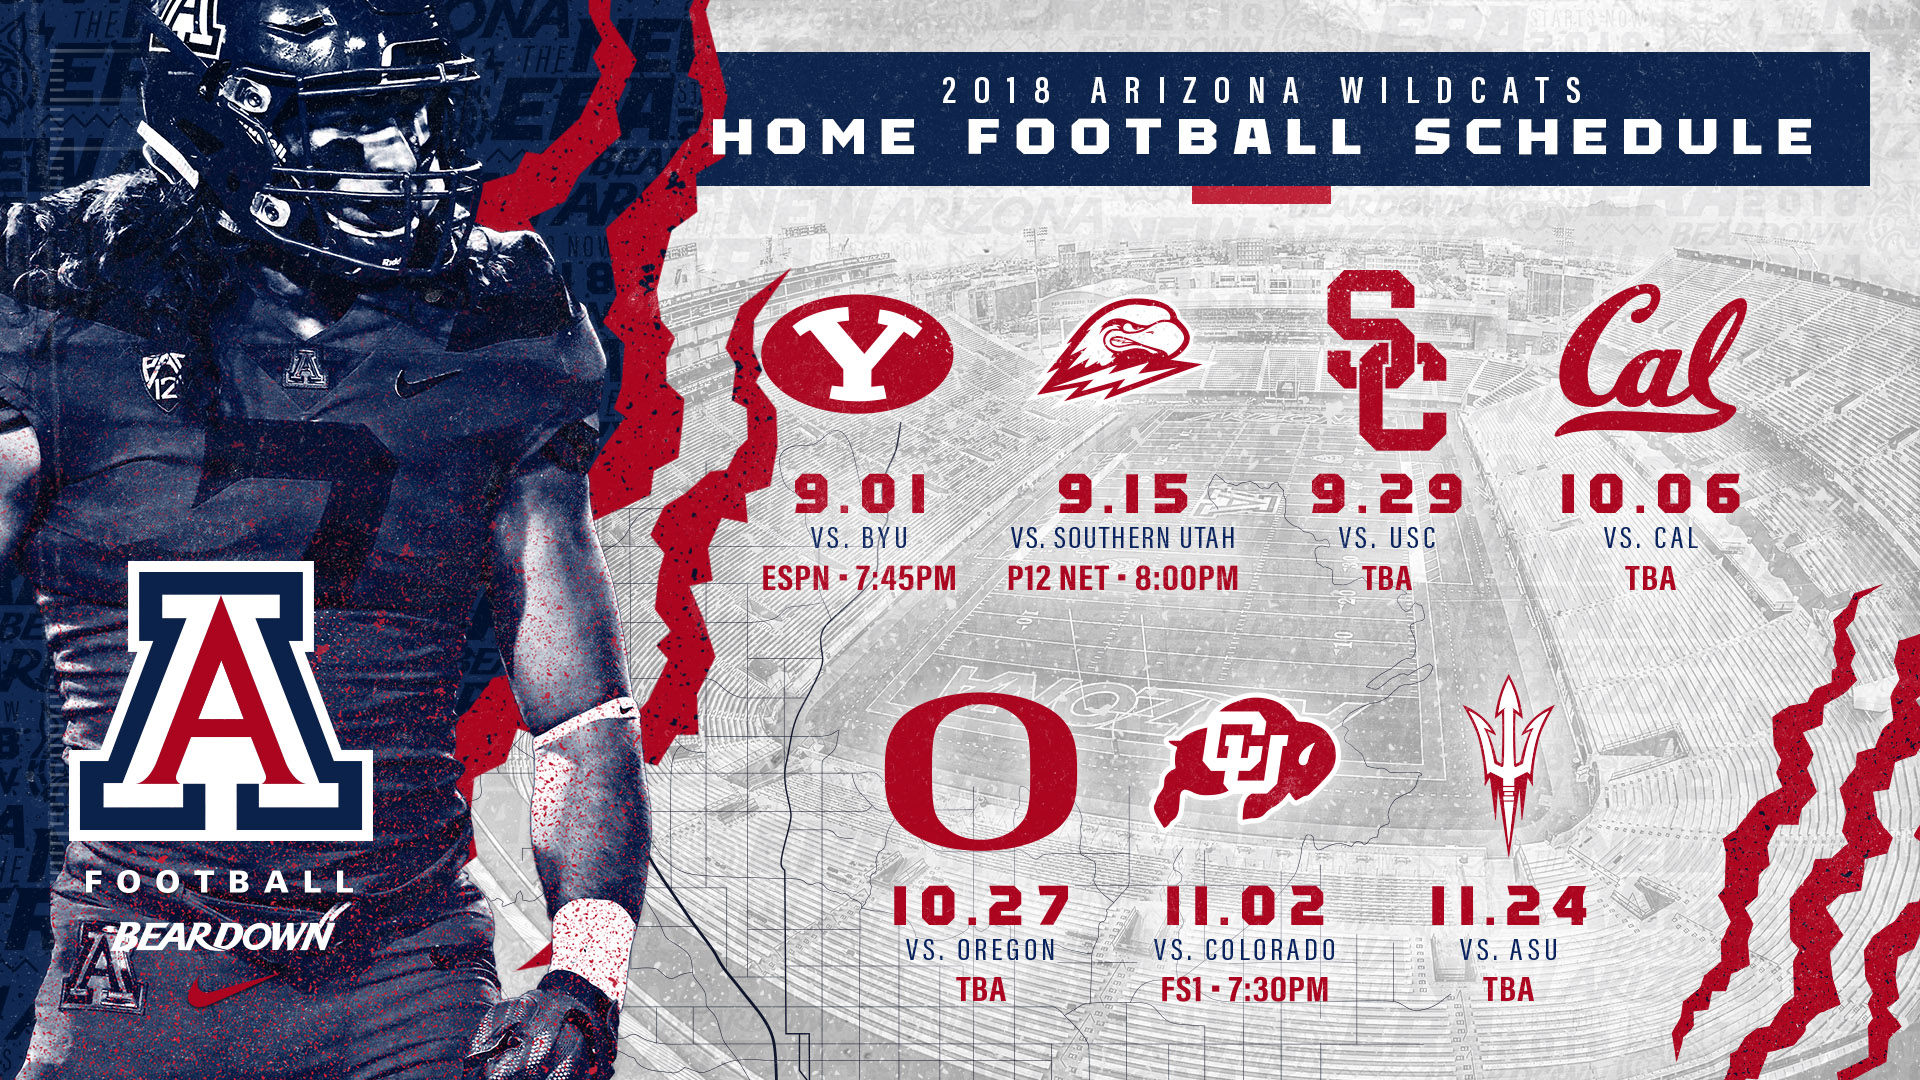 start times set for three home football games - university of